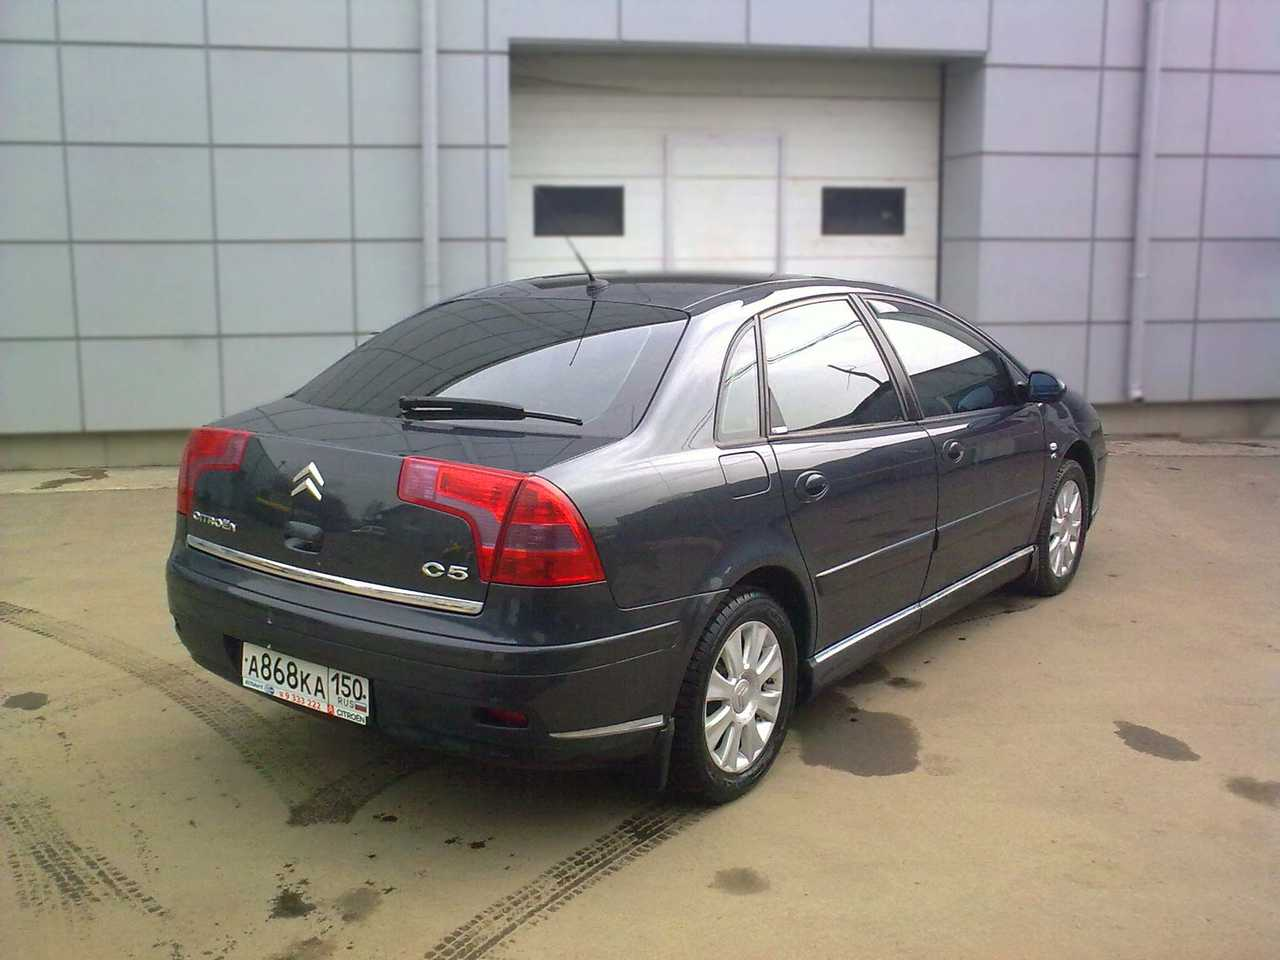 used 2005 citroen c5 photos 3000cc gasoline ff. Black Bedroom Furniture Sets. Home Design Ideas